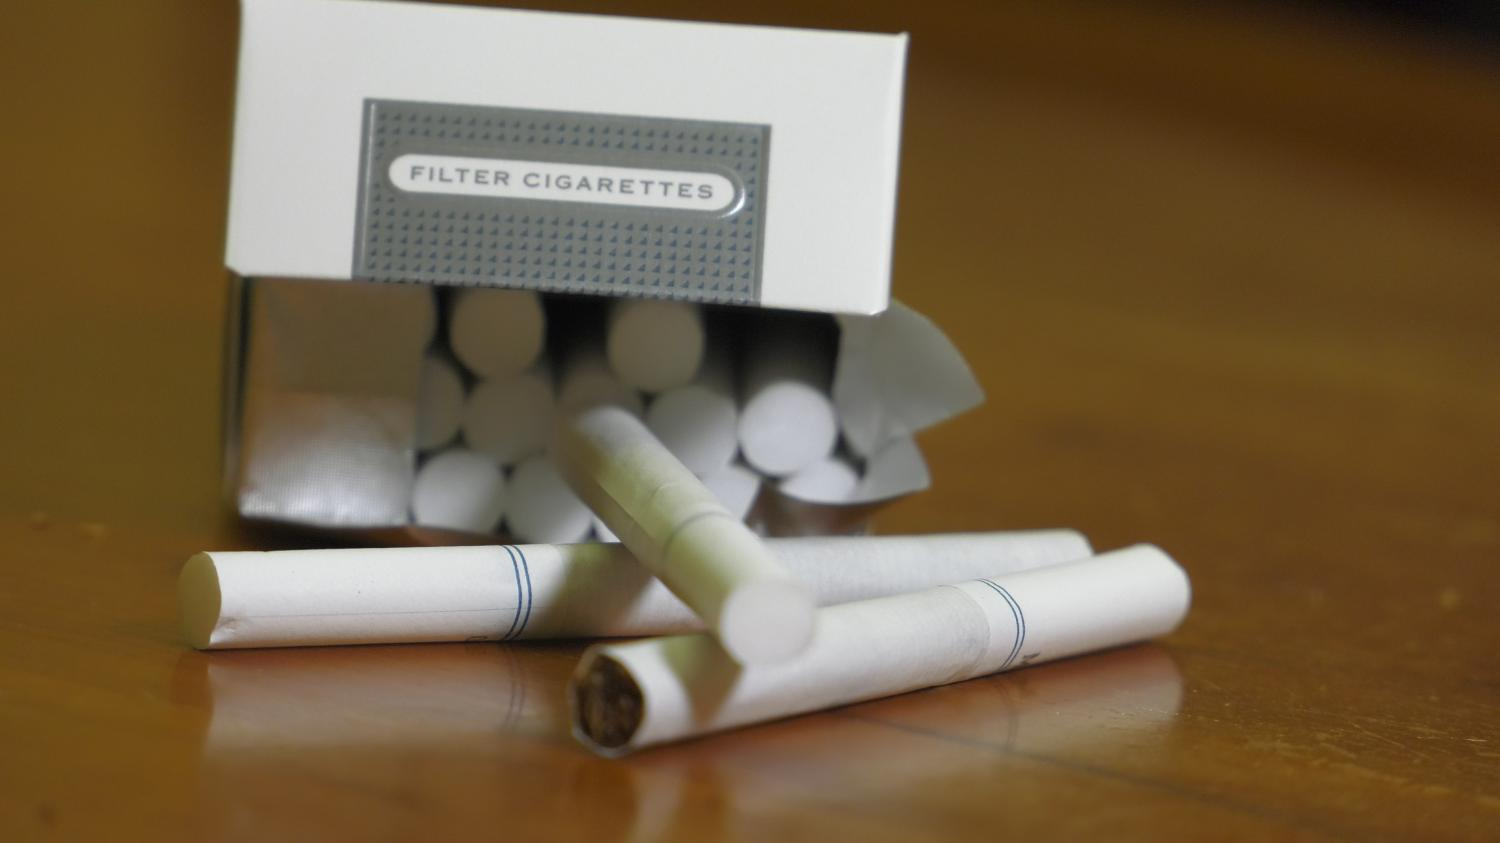 Cigarette filters may increase lung cancer risk